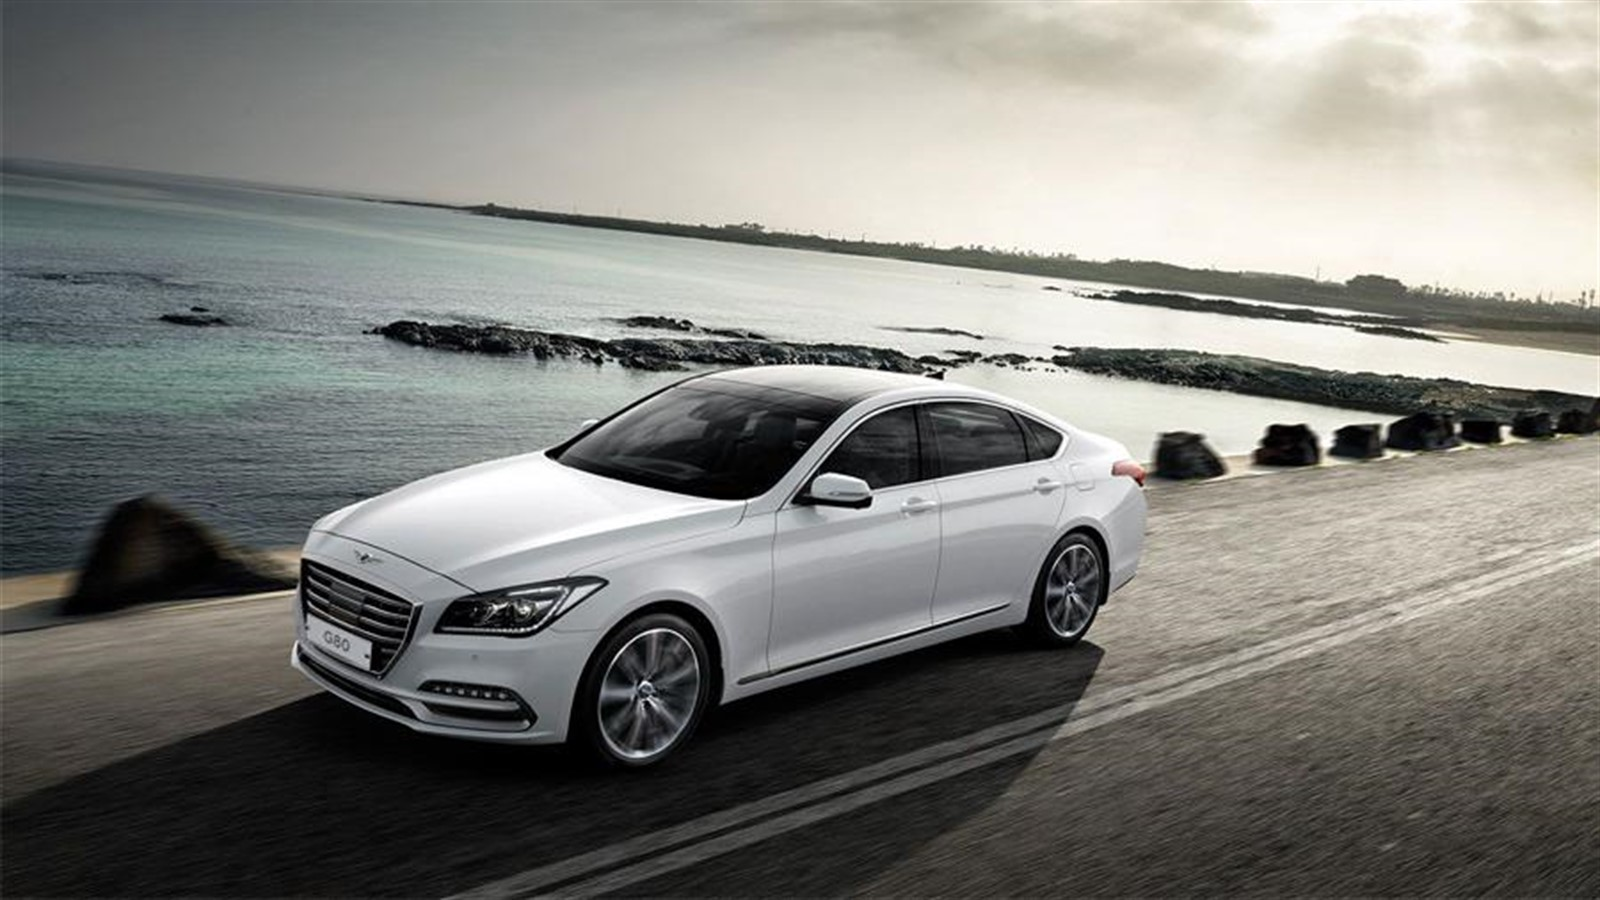 Photo of Genesis will release a sports version of the G80 sedan